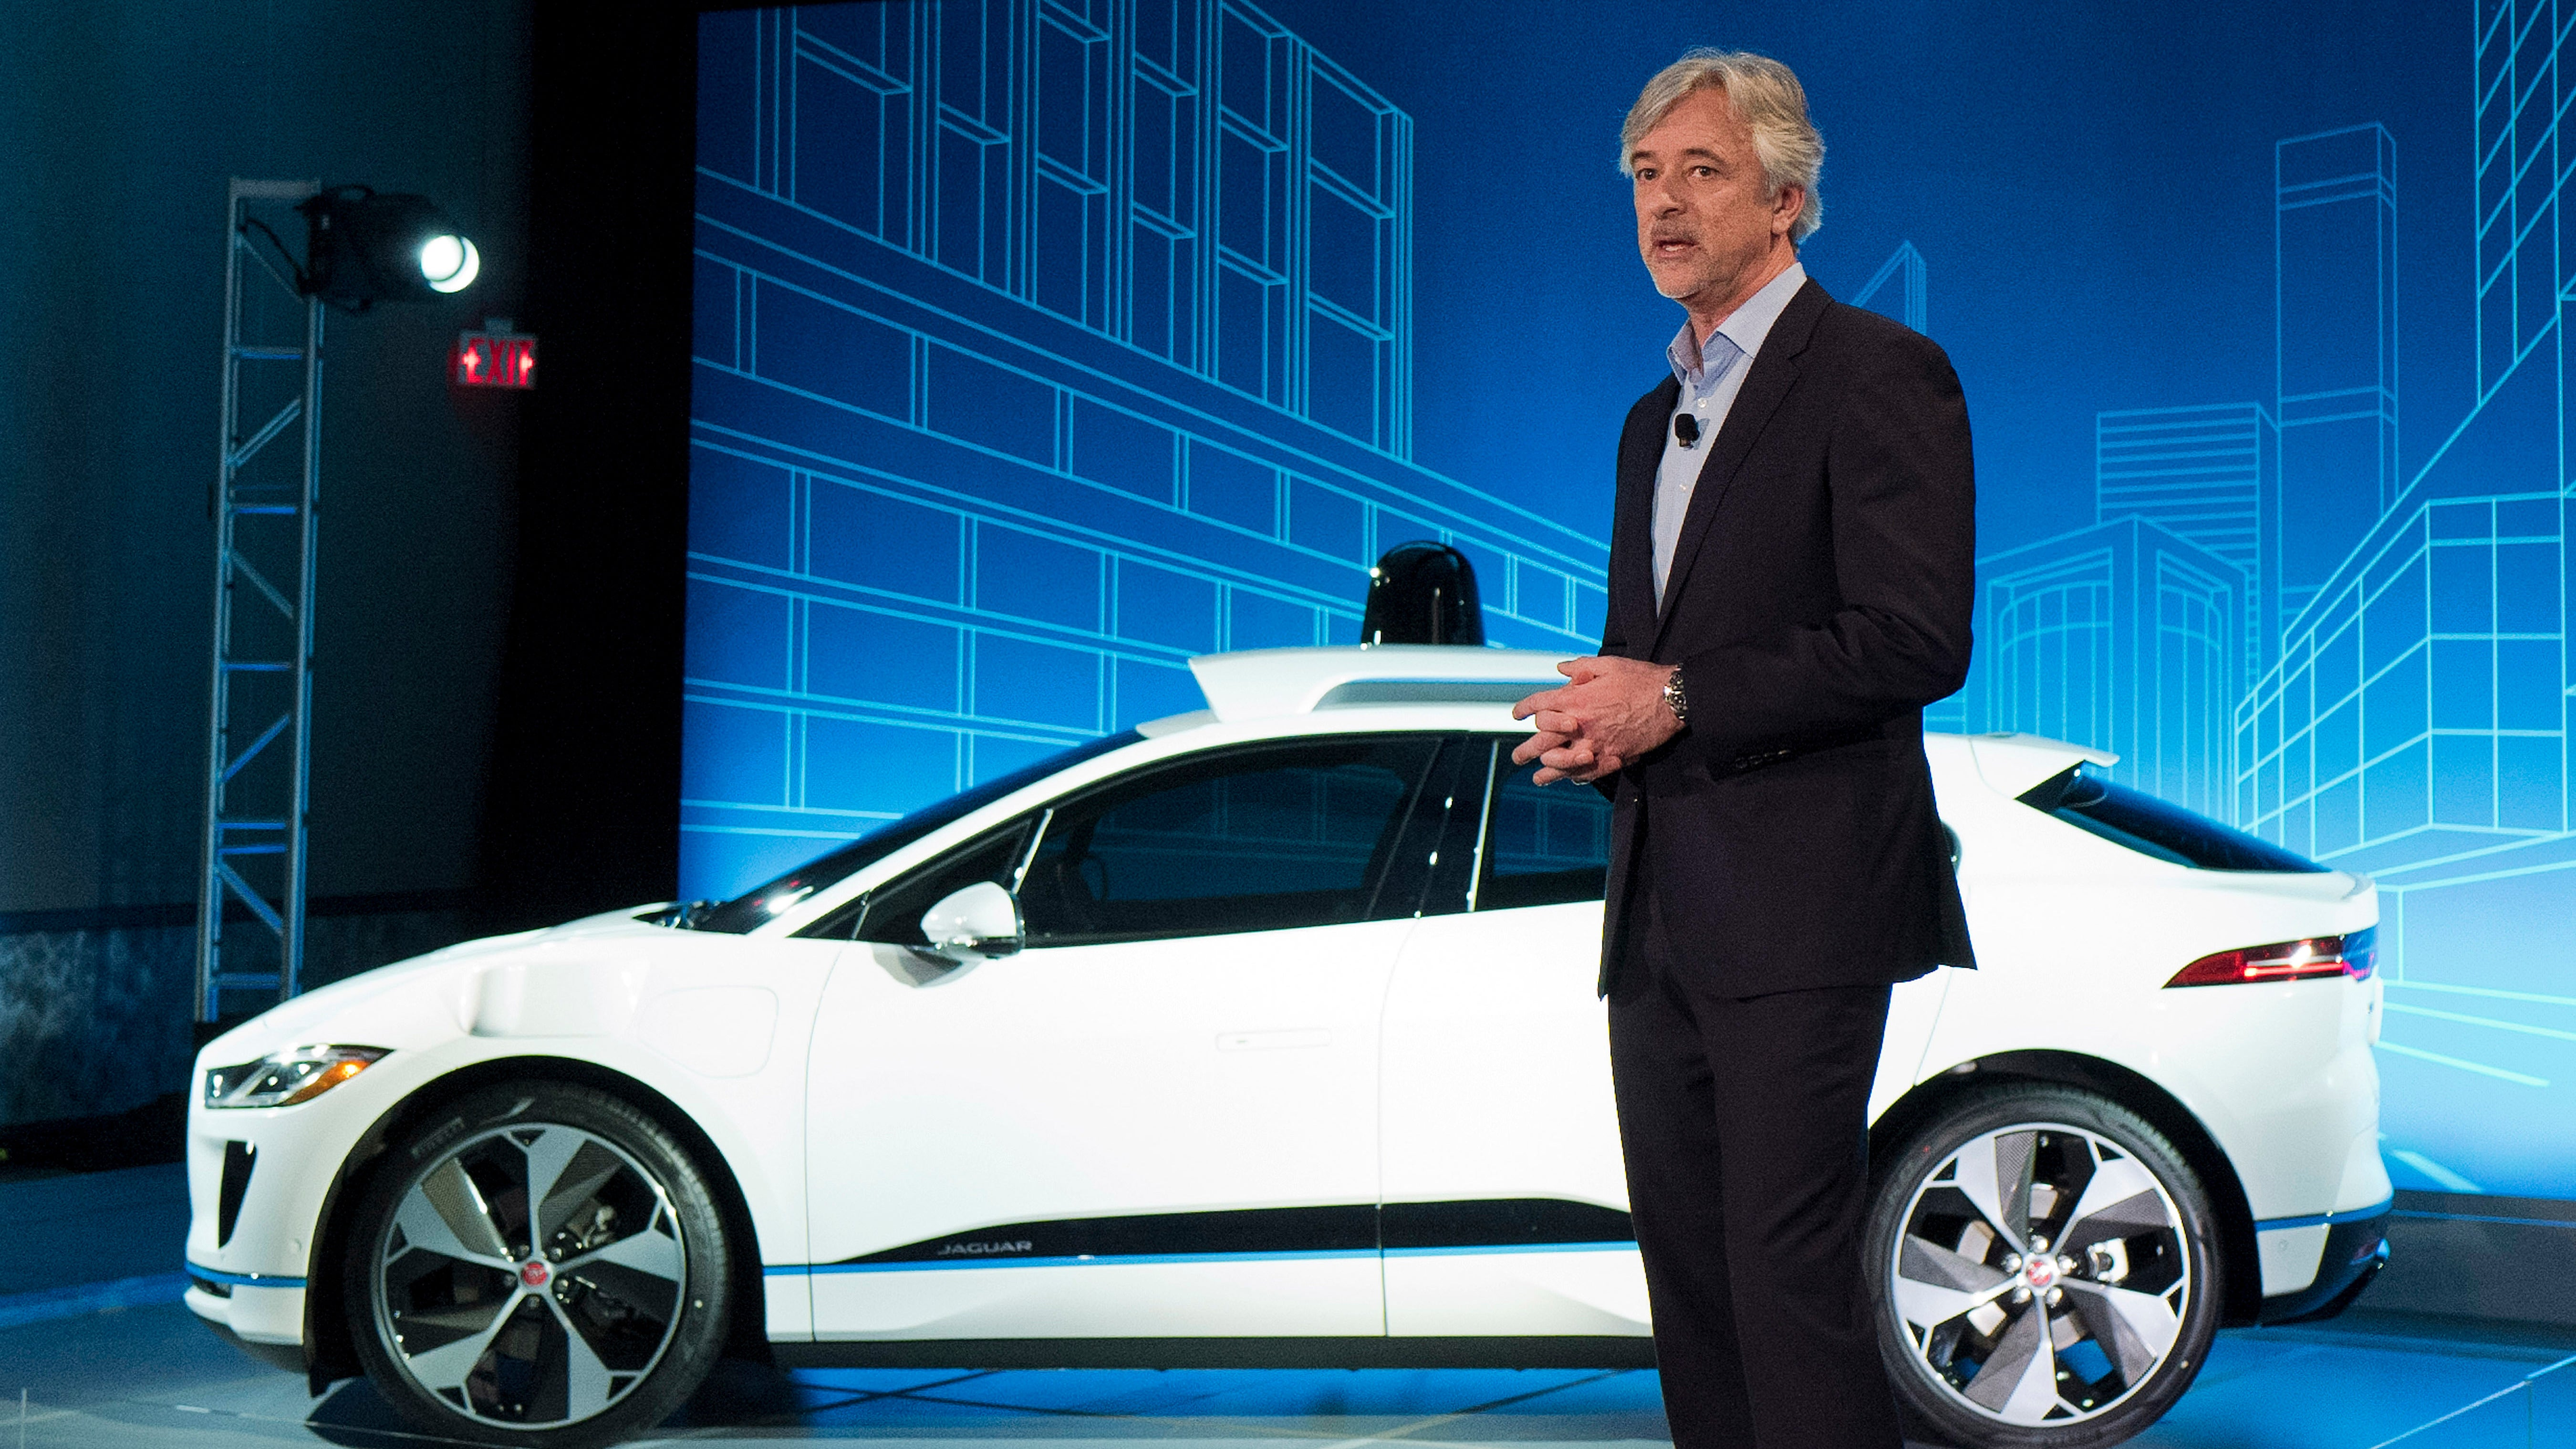 Google's Waymo CEO: We'd Fight A Ban On Human Driving